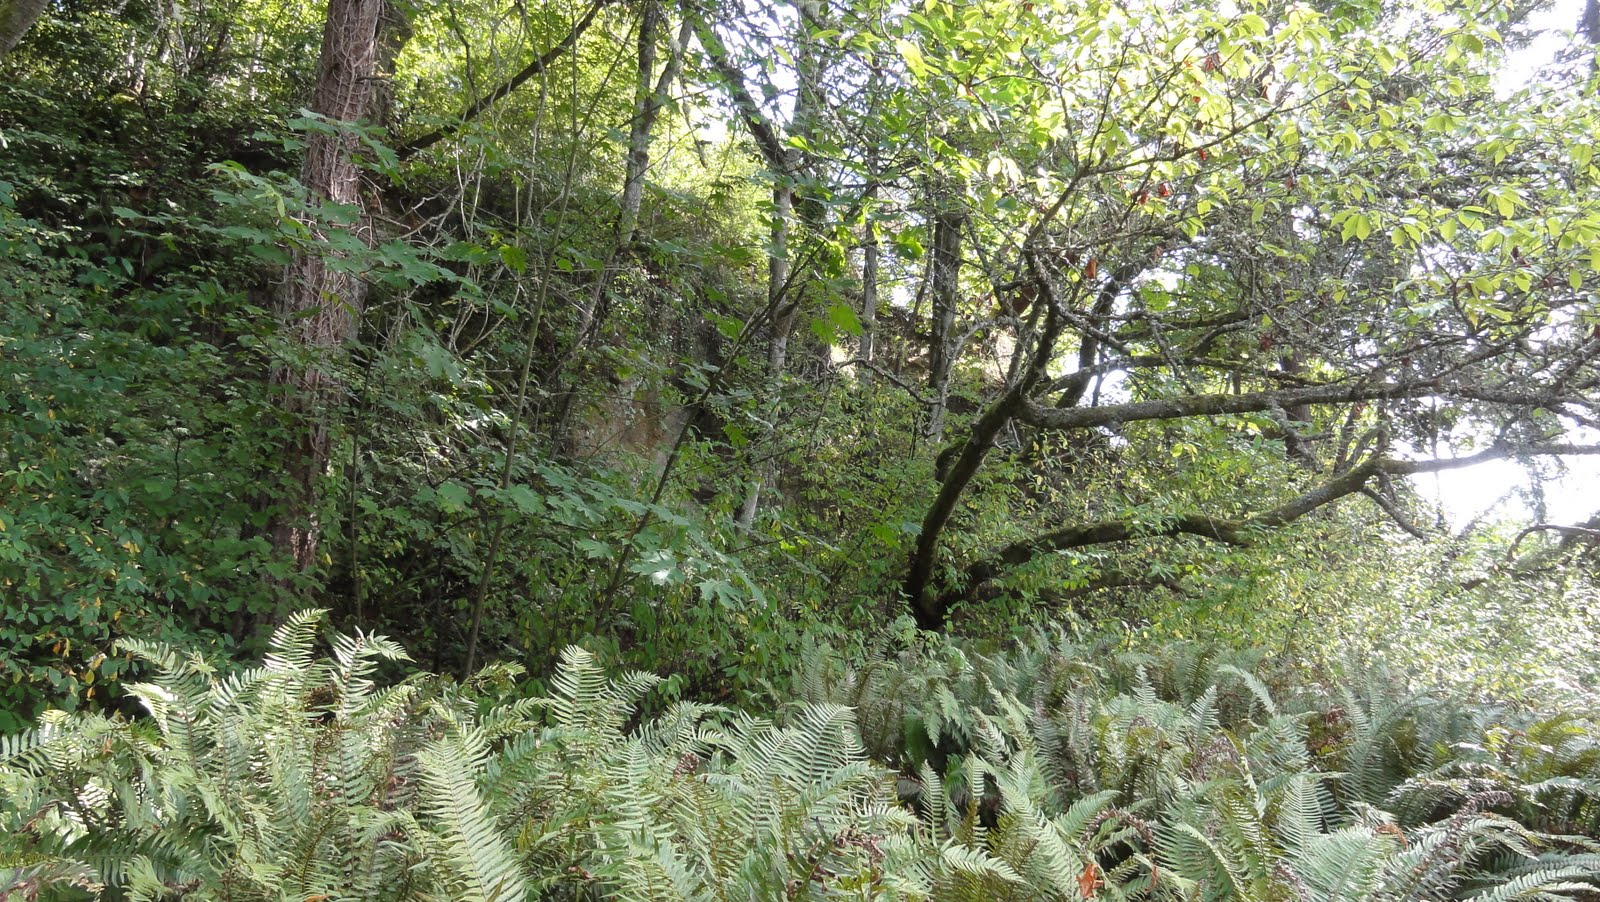 Image shows a short cliff behind a lot of sword ferns, young skinny trees, and other plant life.